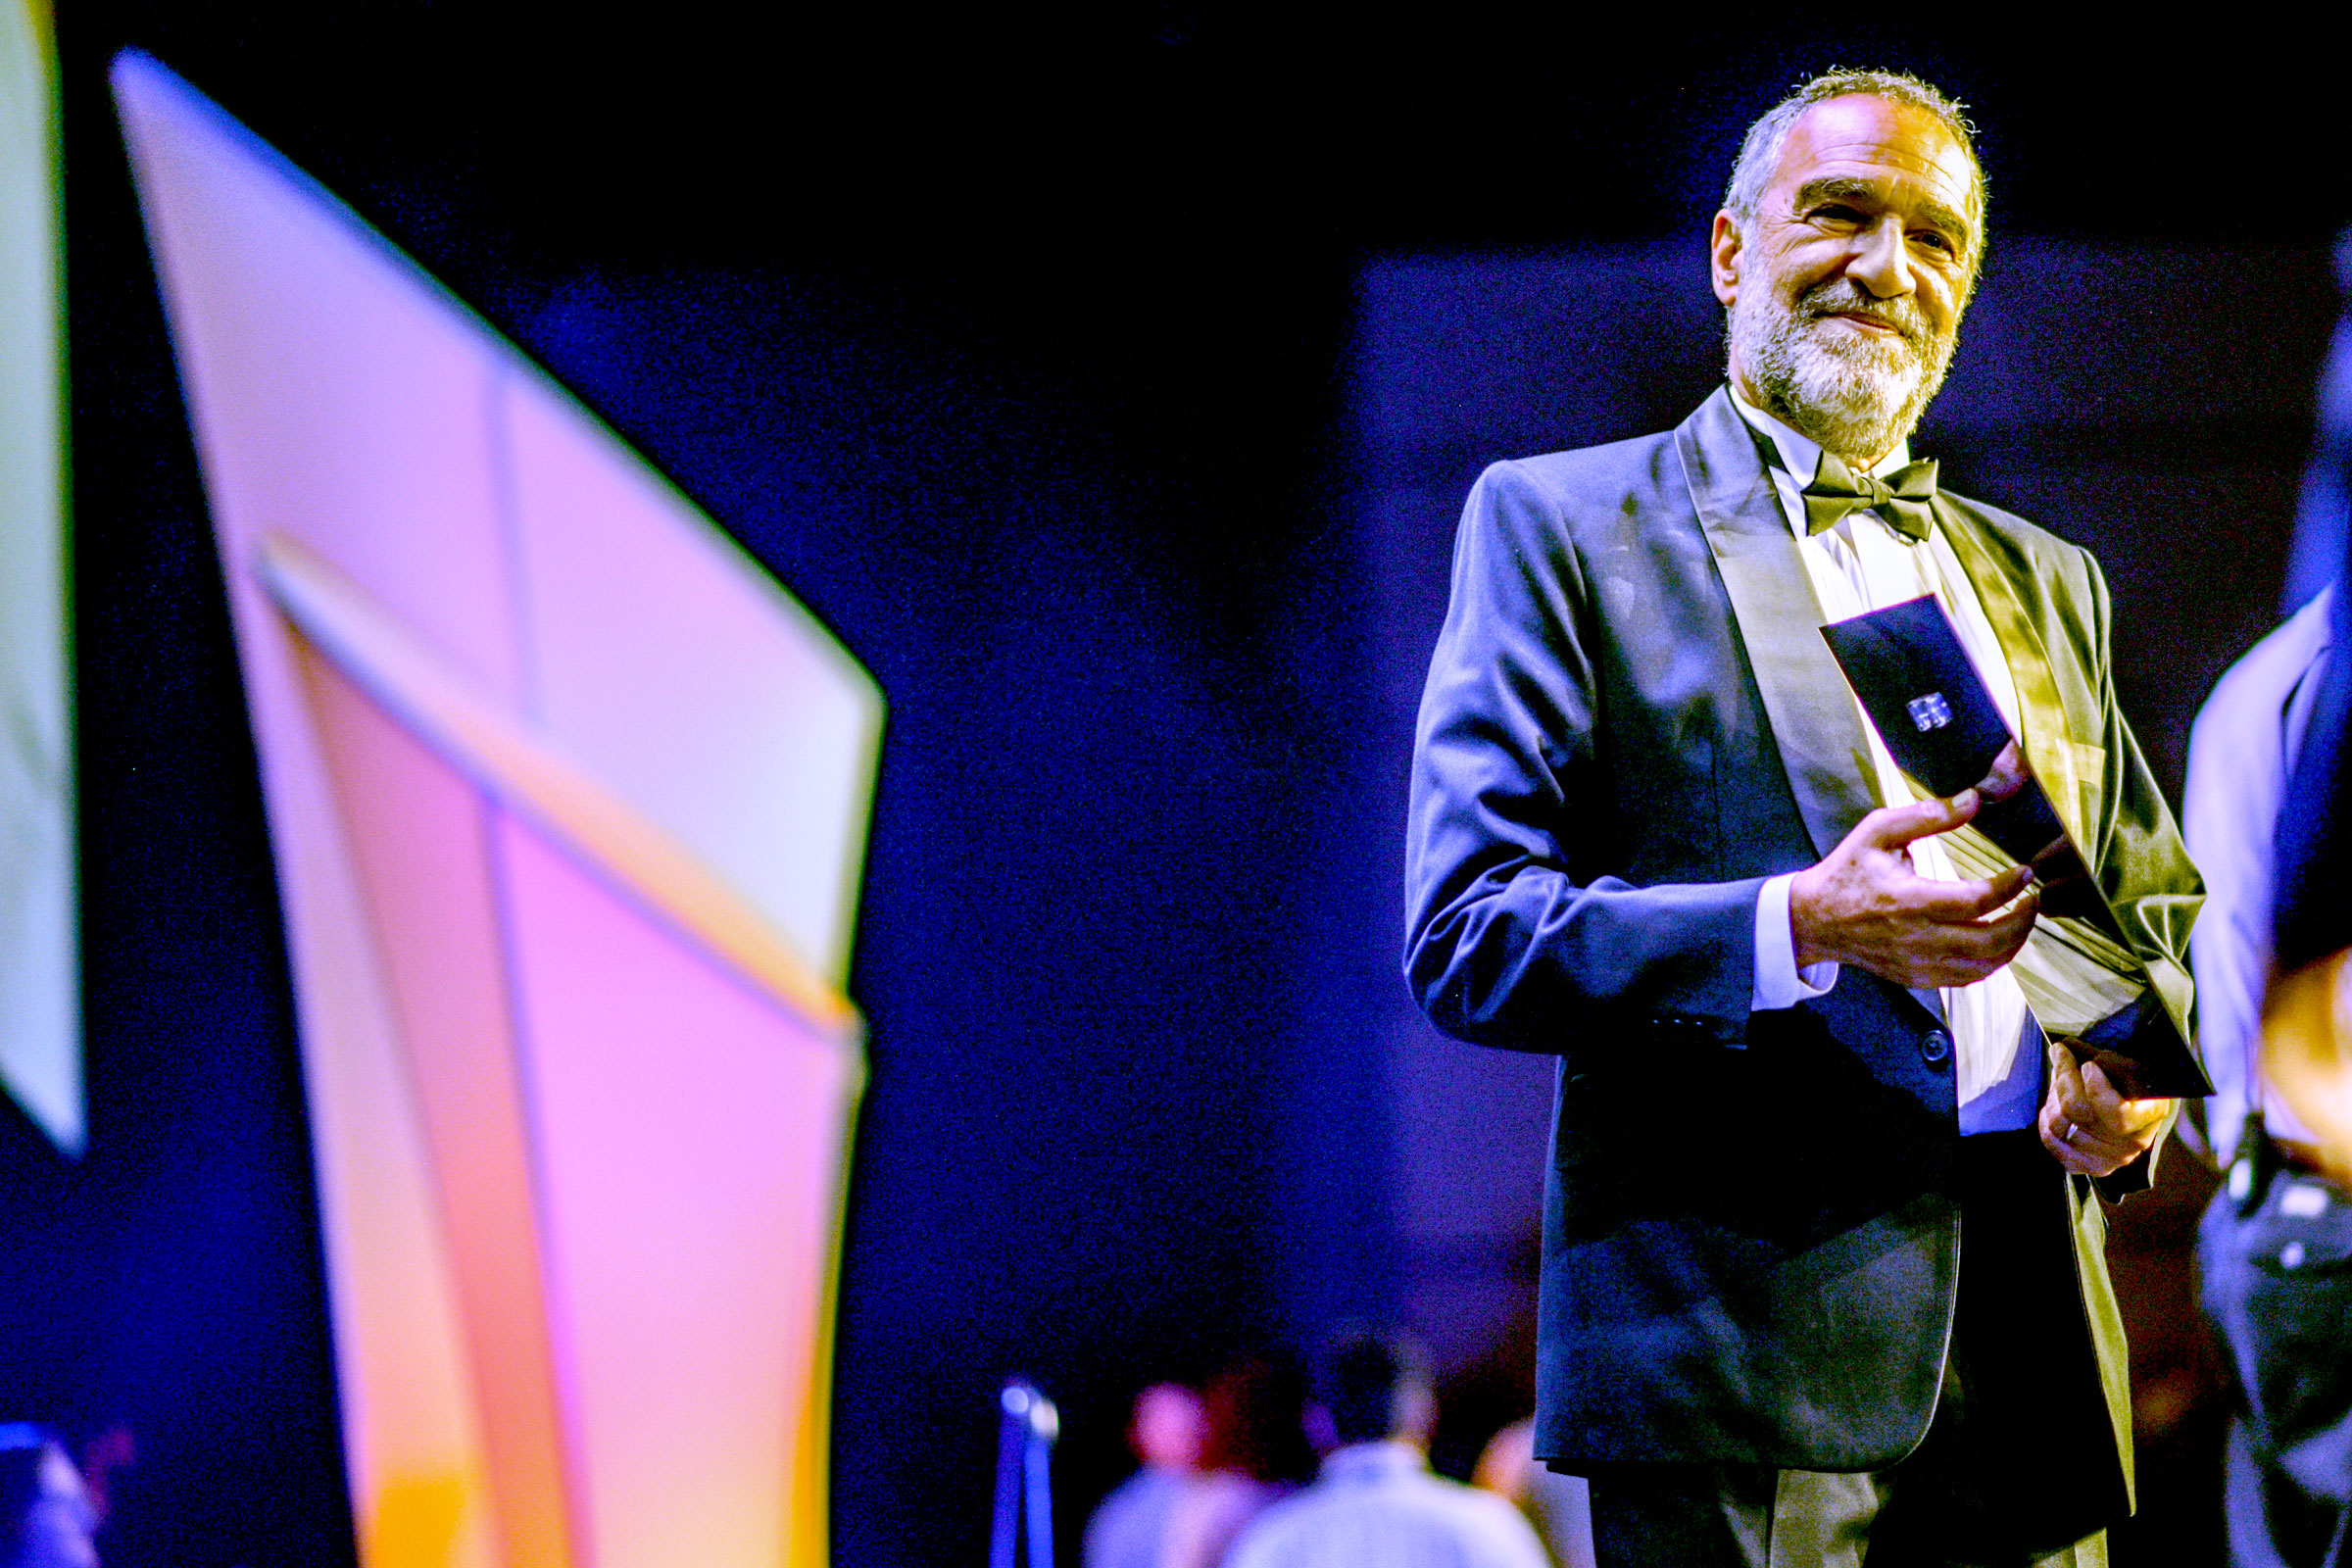 Charlie Papazian at the 2016 World Beer Cup. (Photos © Brewers Association)